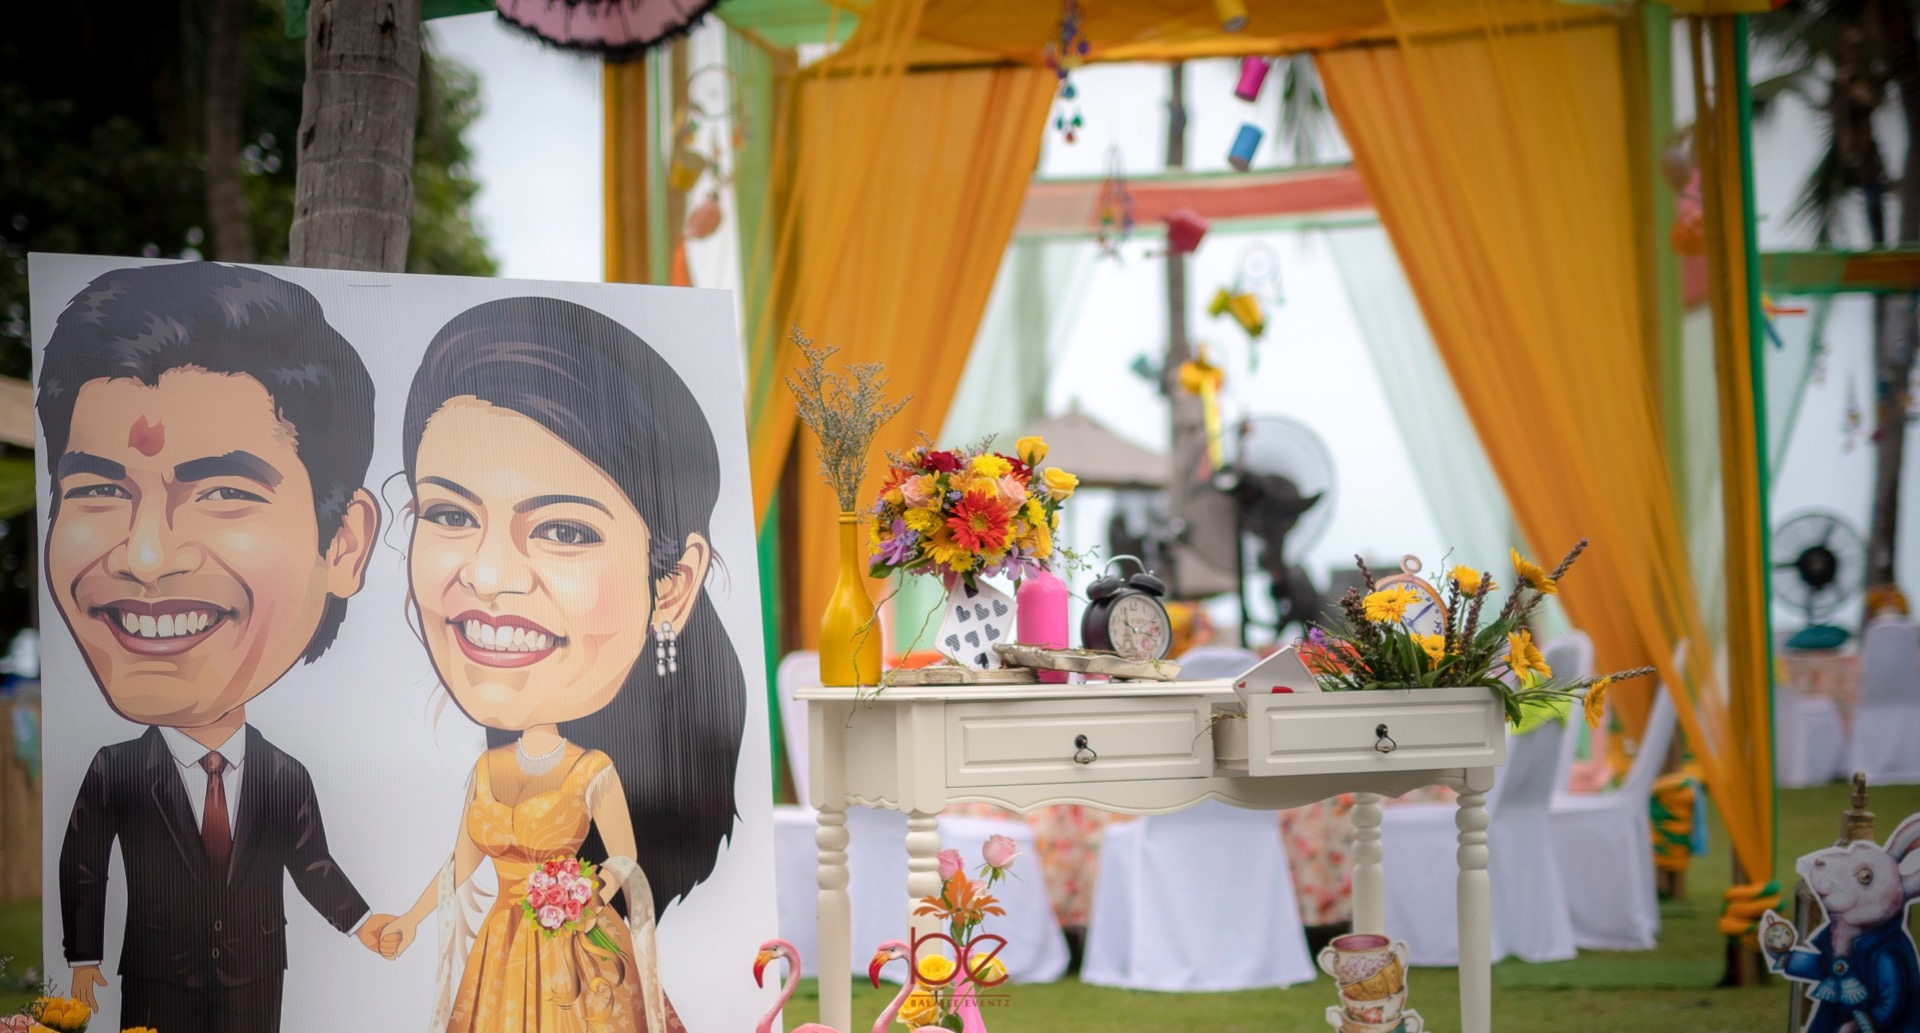 Couple Caricature Board and Colorful Floral Outdoor Decor